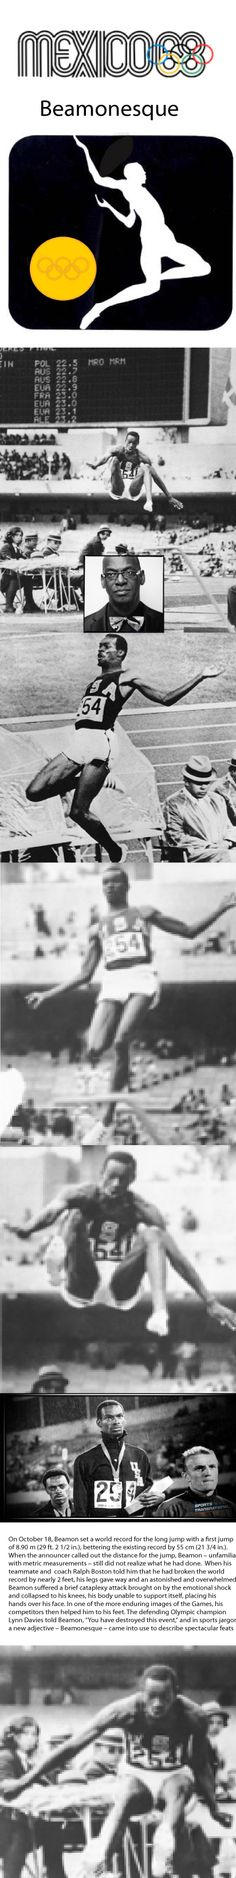 Bob Beamon - a career of excellence - at the 1968 Olympics i Mexico City, a moment of pure genius.